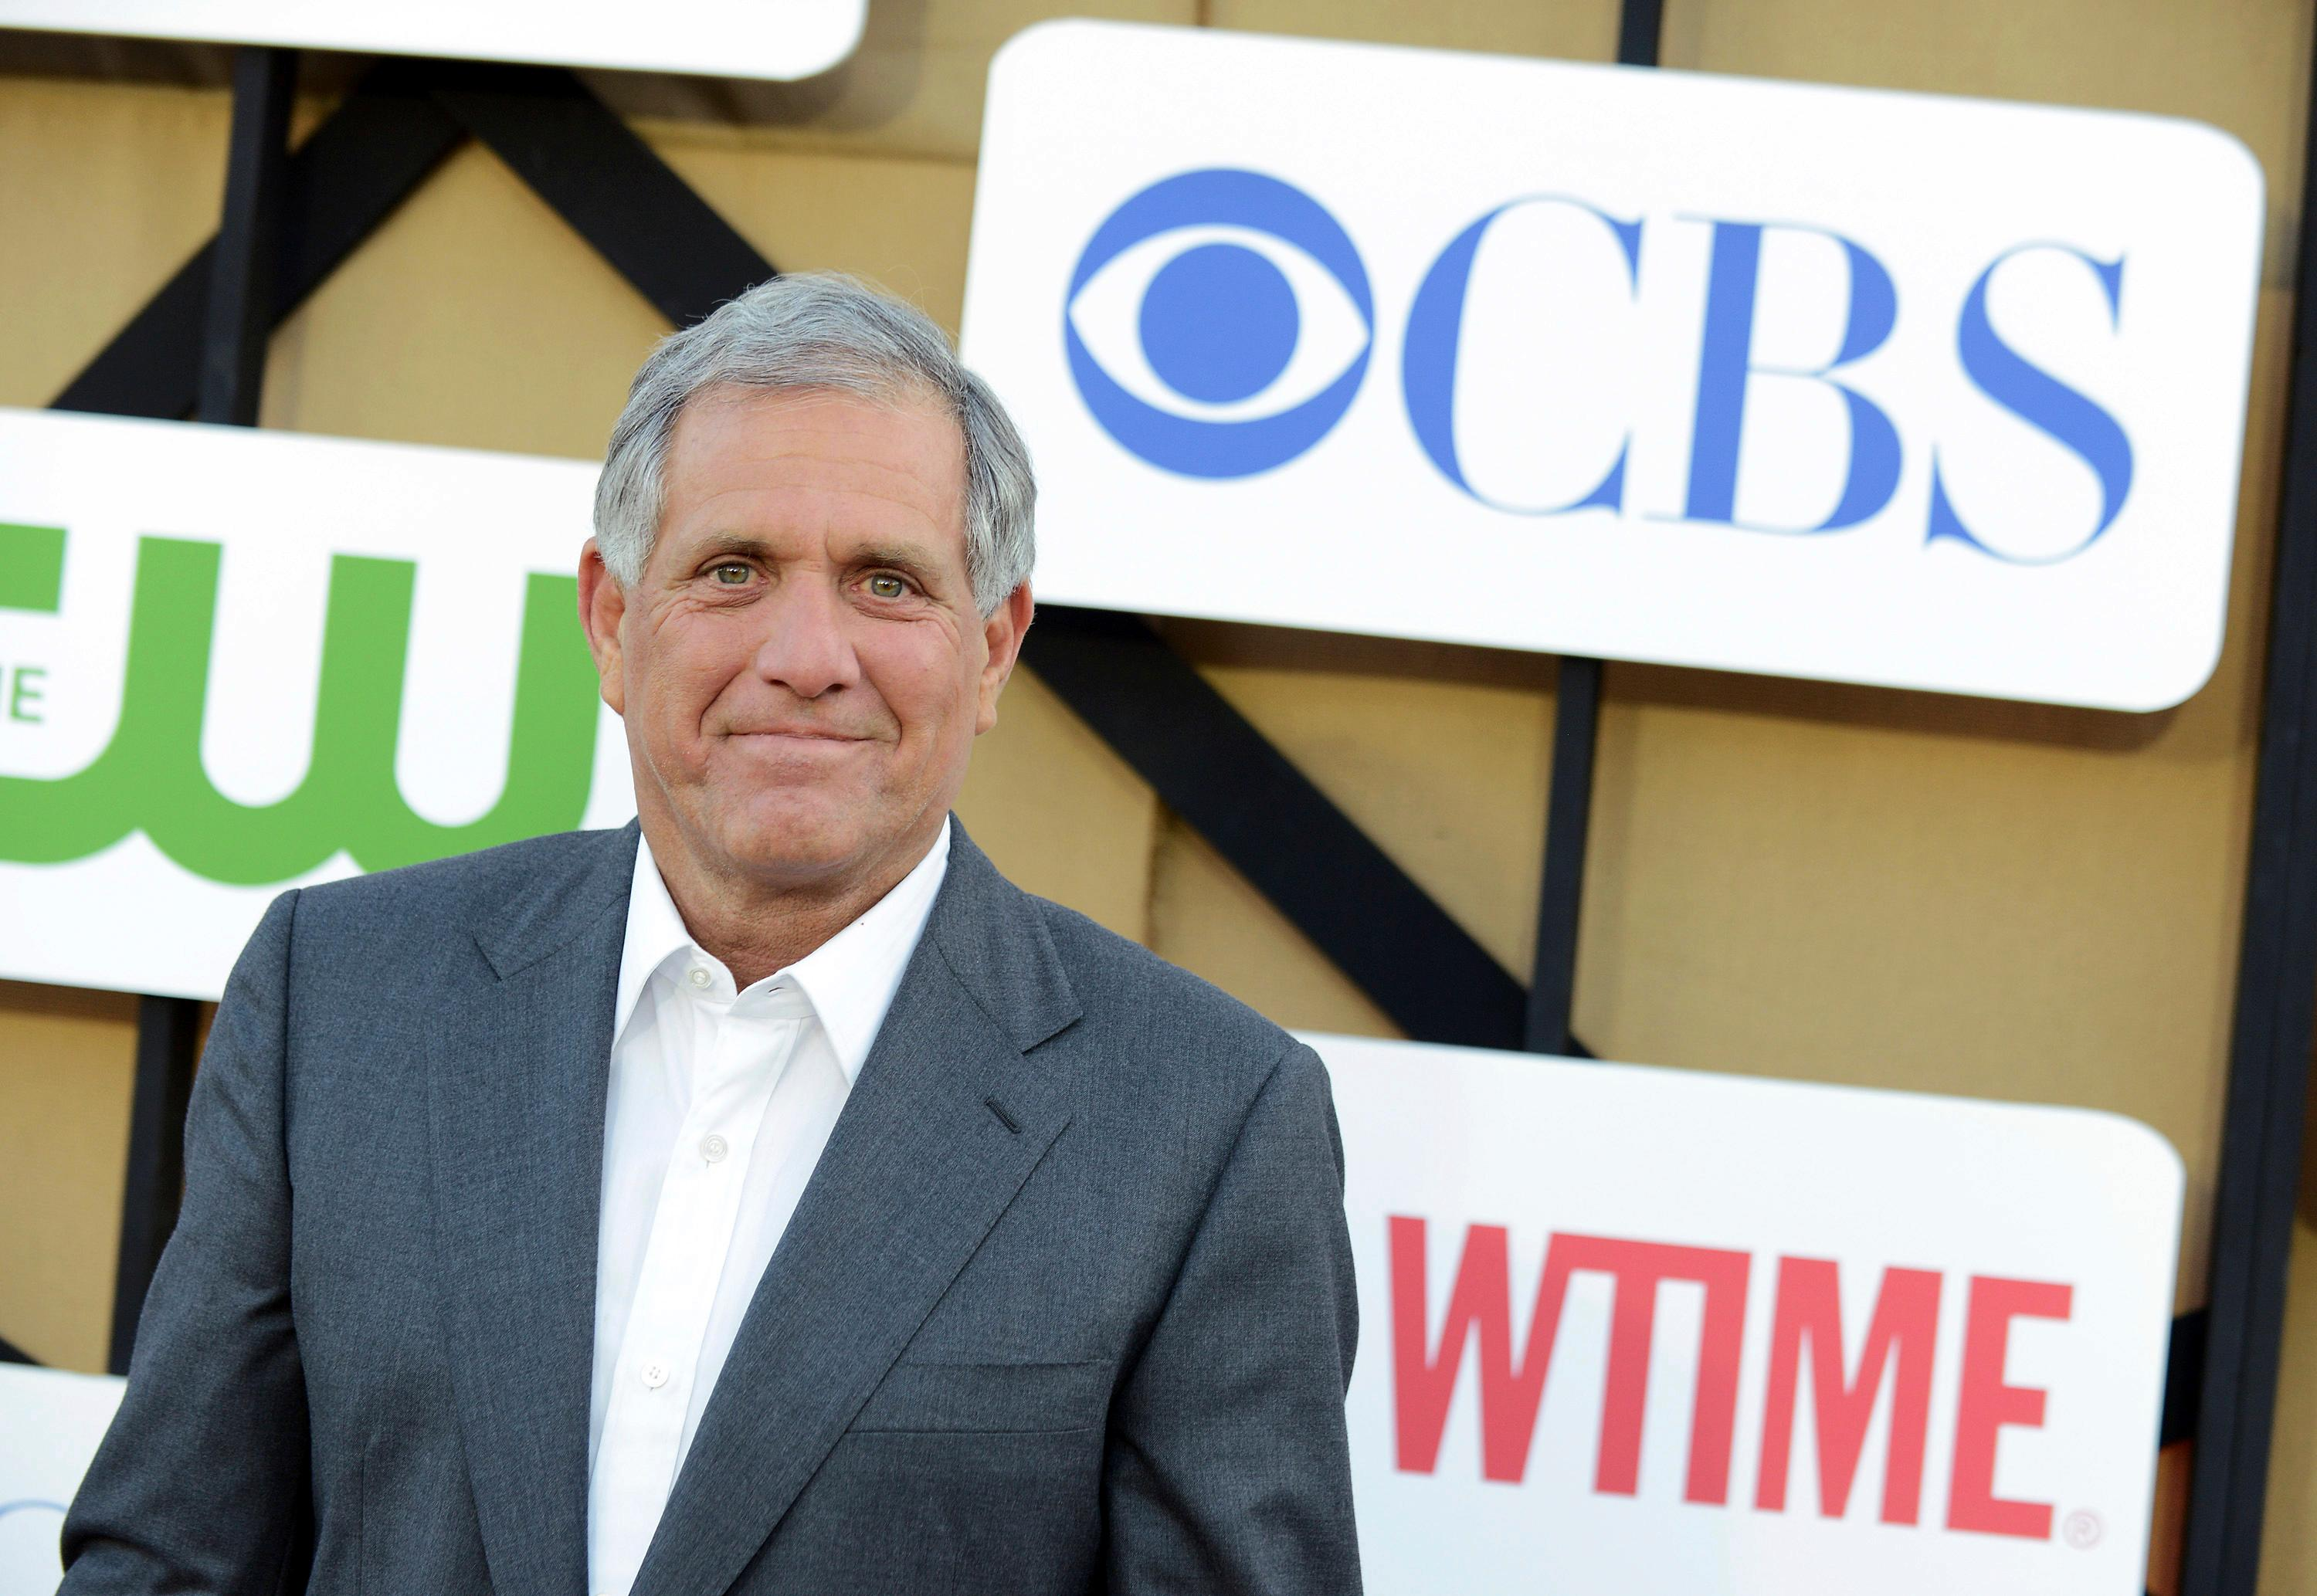 FILE - In this July 29, 2013, file photo, Les Moonves arrives at the CBS, CW and Showtime TCA party at The Beverly Hilton in Beverly Hills, Calif.  On Sunday, Sept. 9, 2018, CBS said longtime CEO Les Moonves has resigned, just hours after more sexual harassment allegations involving the network's longtime leader surfaced. (Photo by Jordan Strauss/Invision/AP, File)